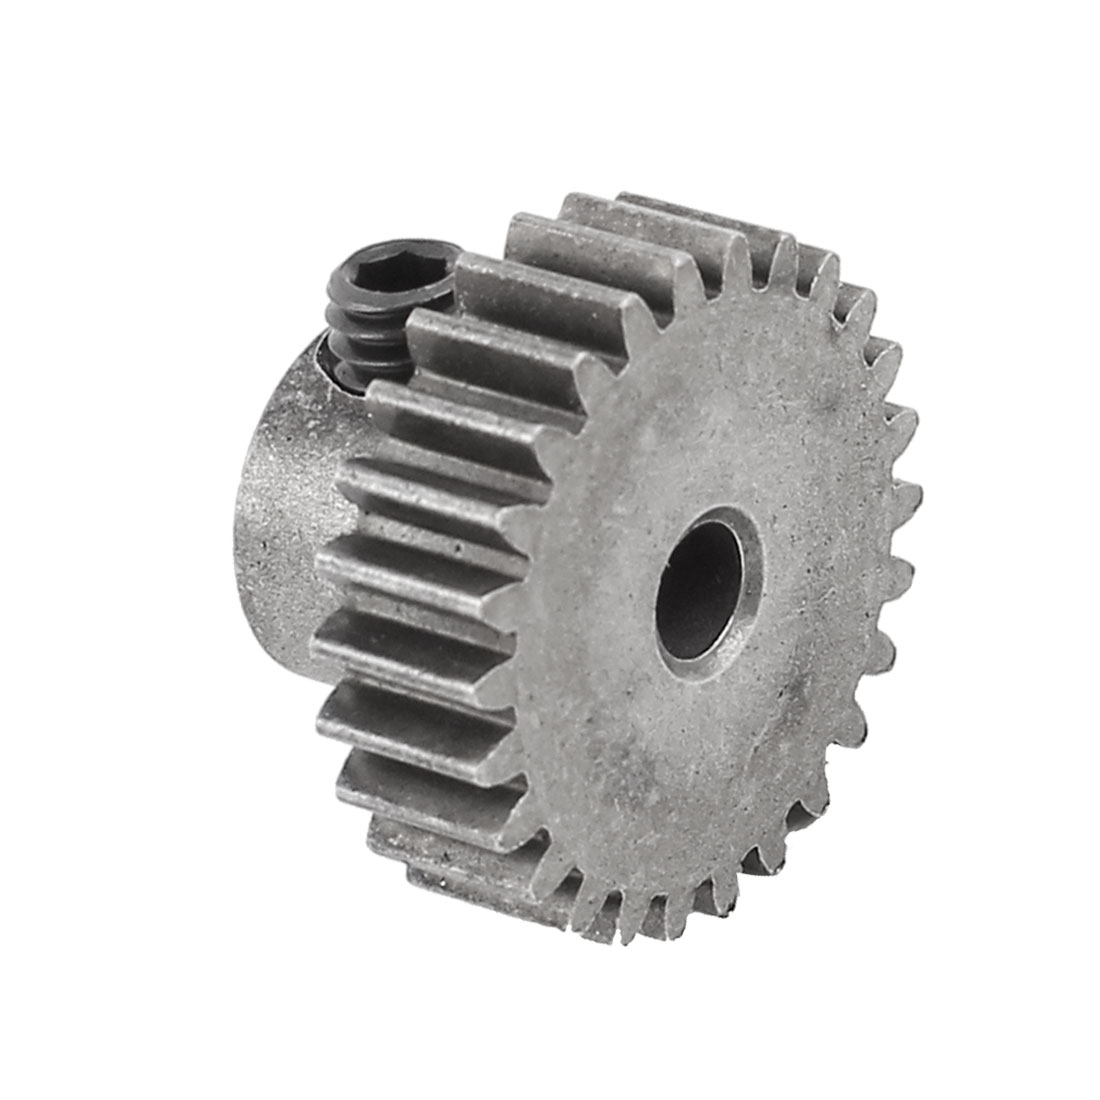 11176 Steel Motor Gear 26T 11 x 17mm for 94111/94123/94170 RC 1/10 Car